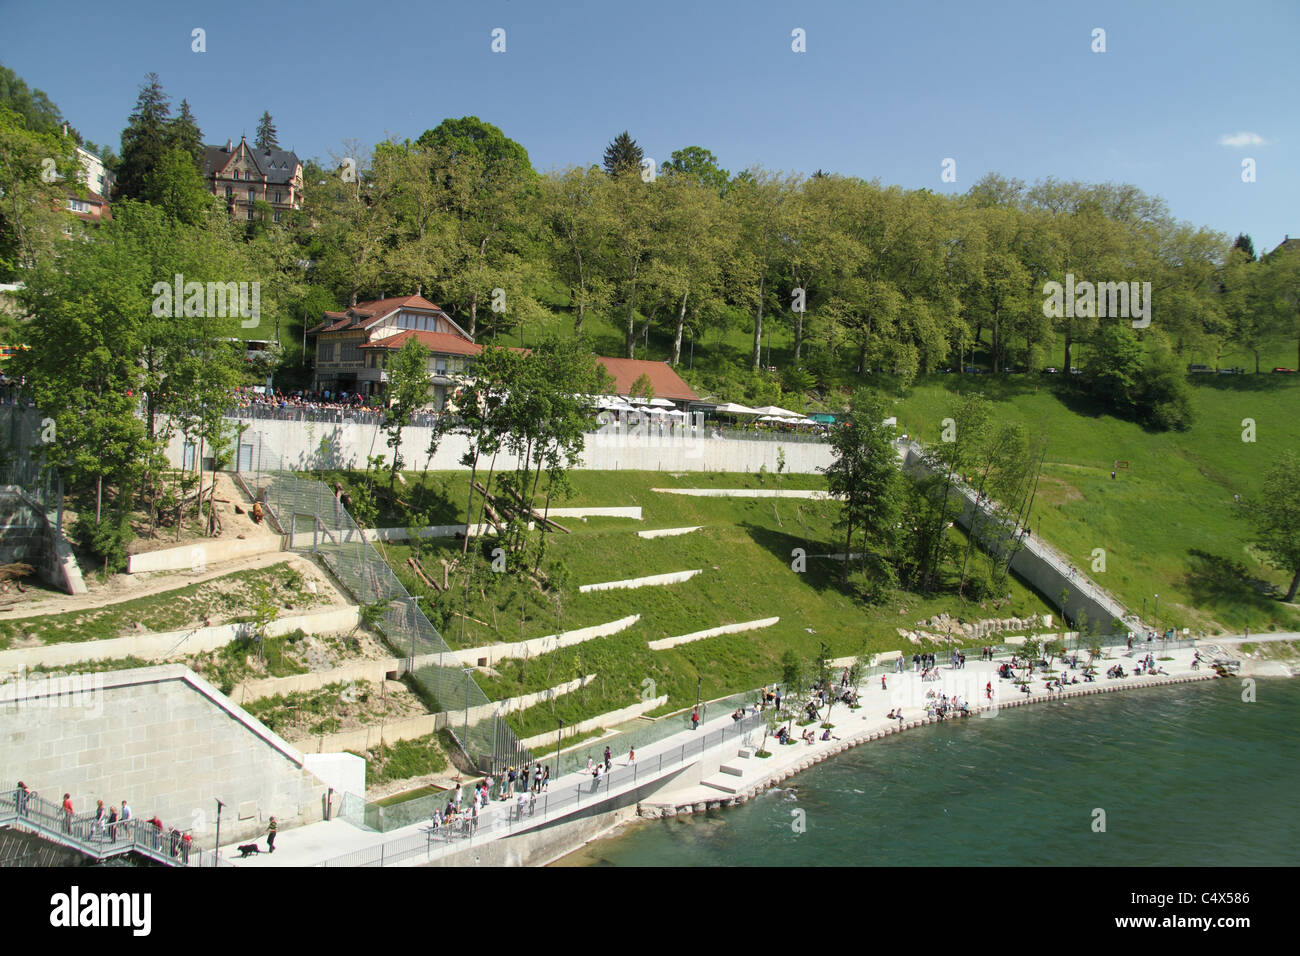 BärenPark (Bear Park) on the banks of the Aare River - Stock Image